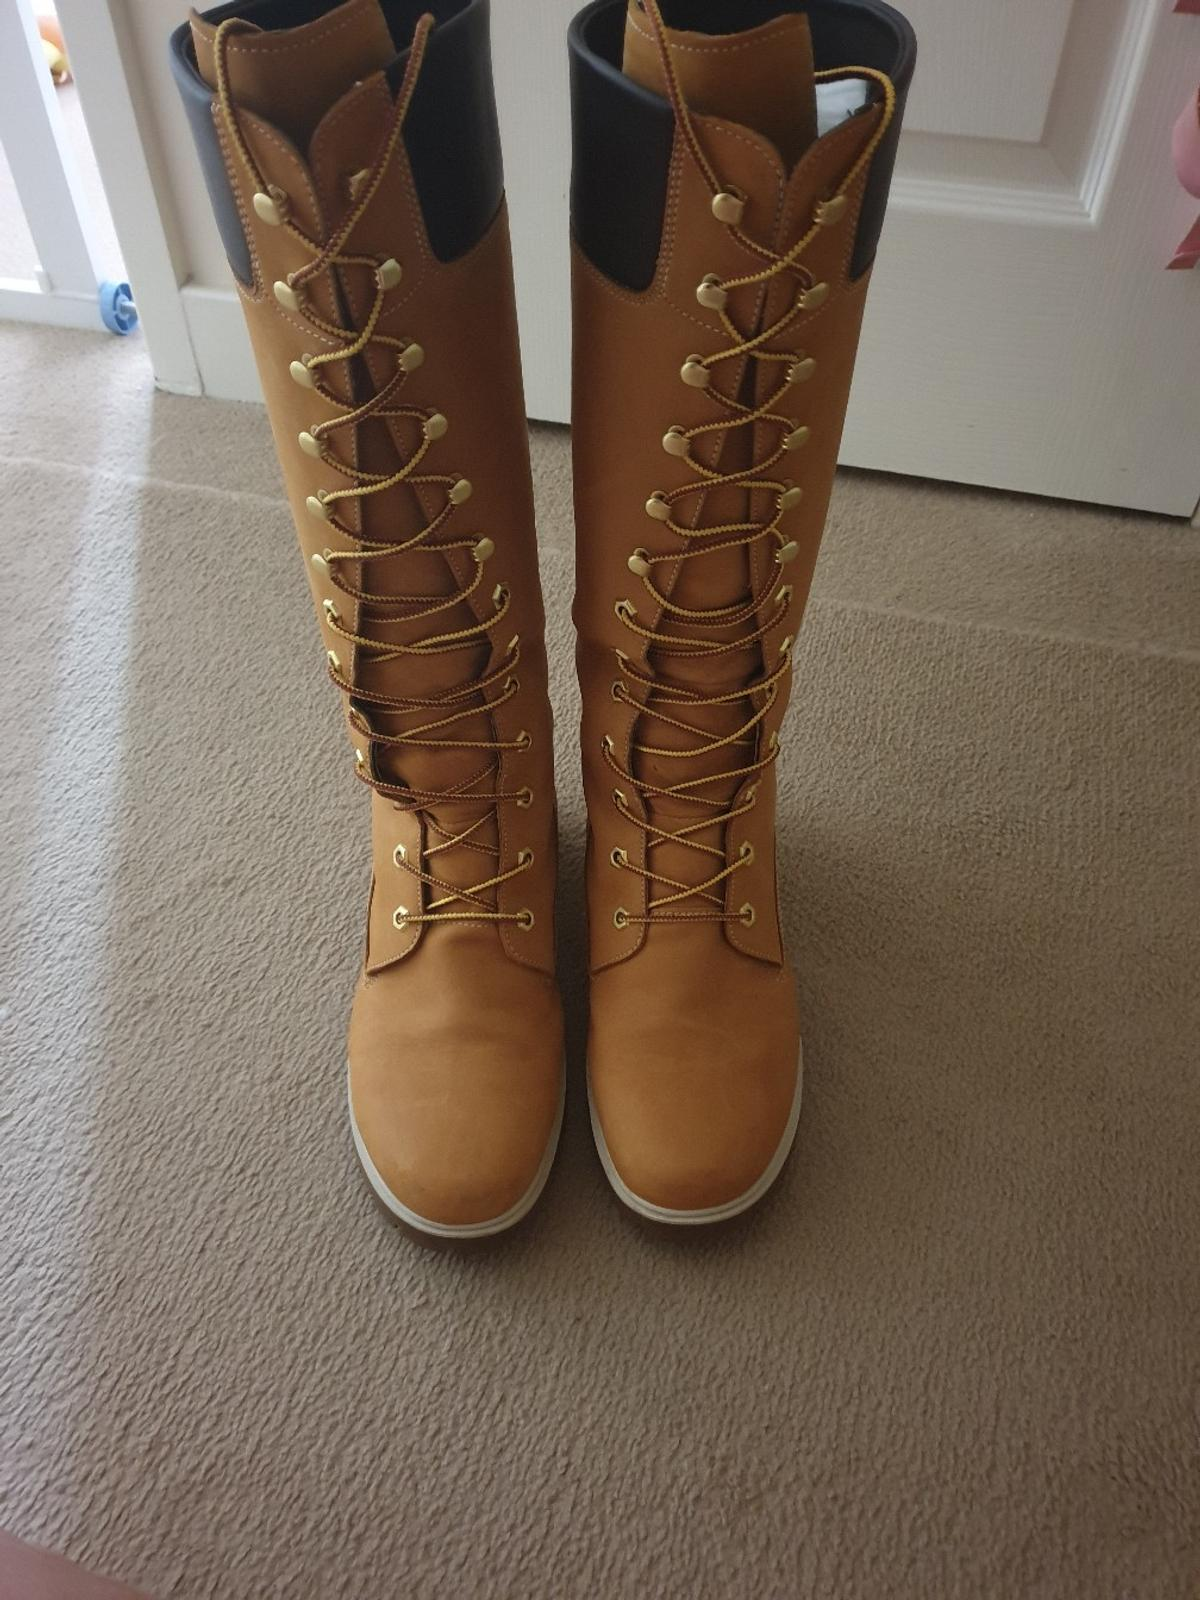 timberland knee high boots size 5